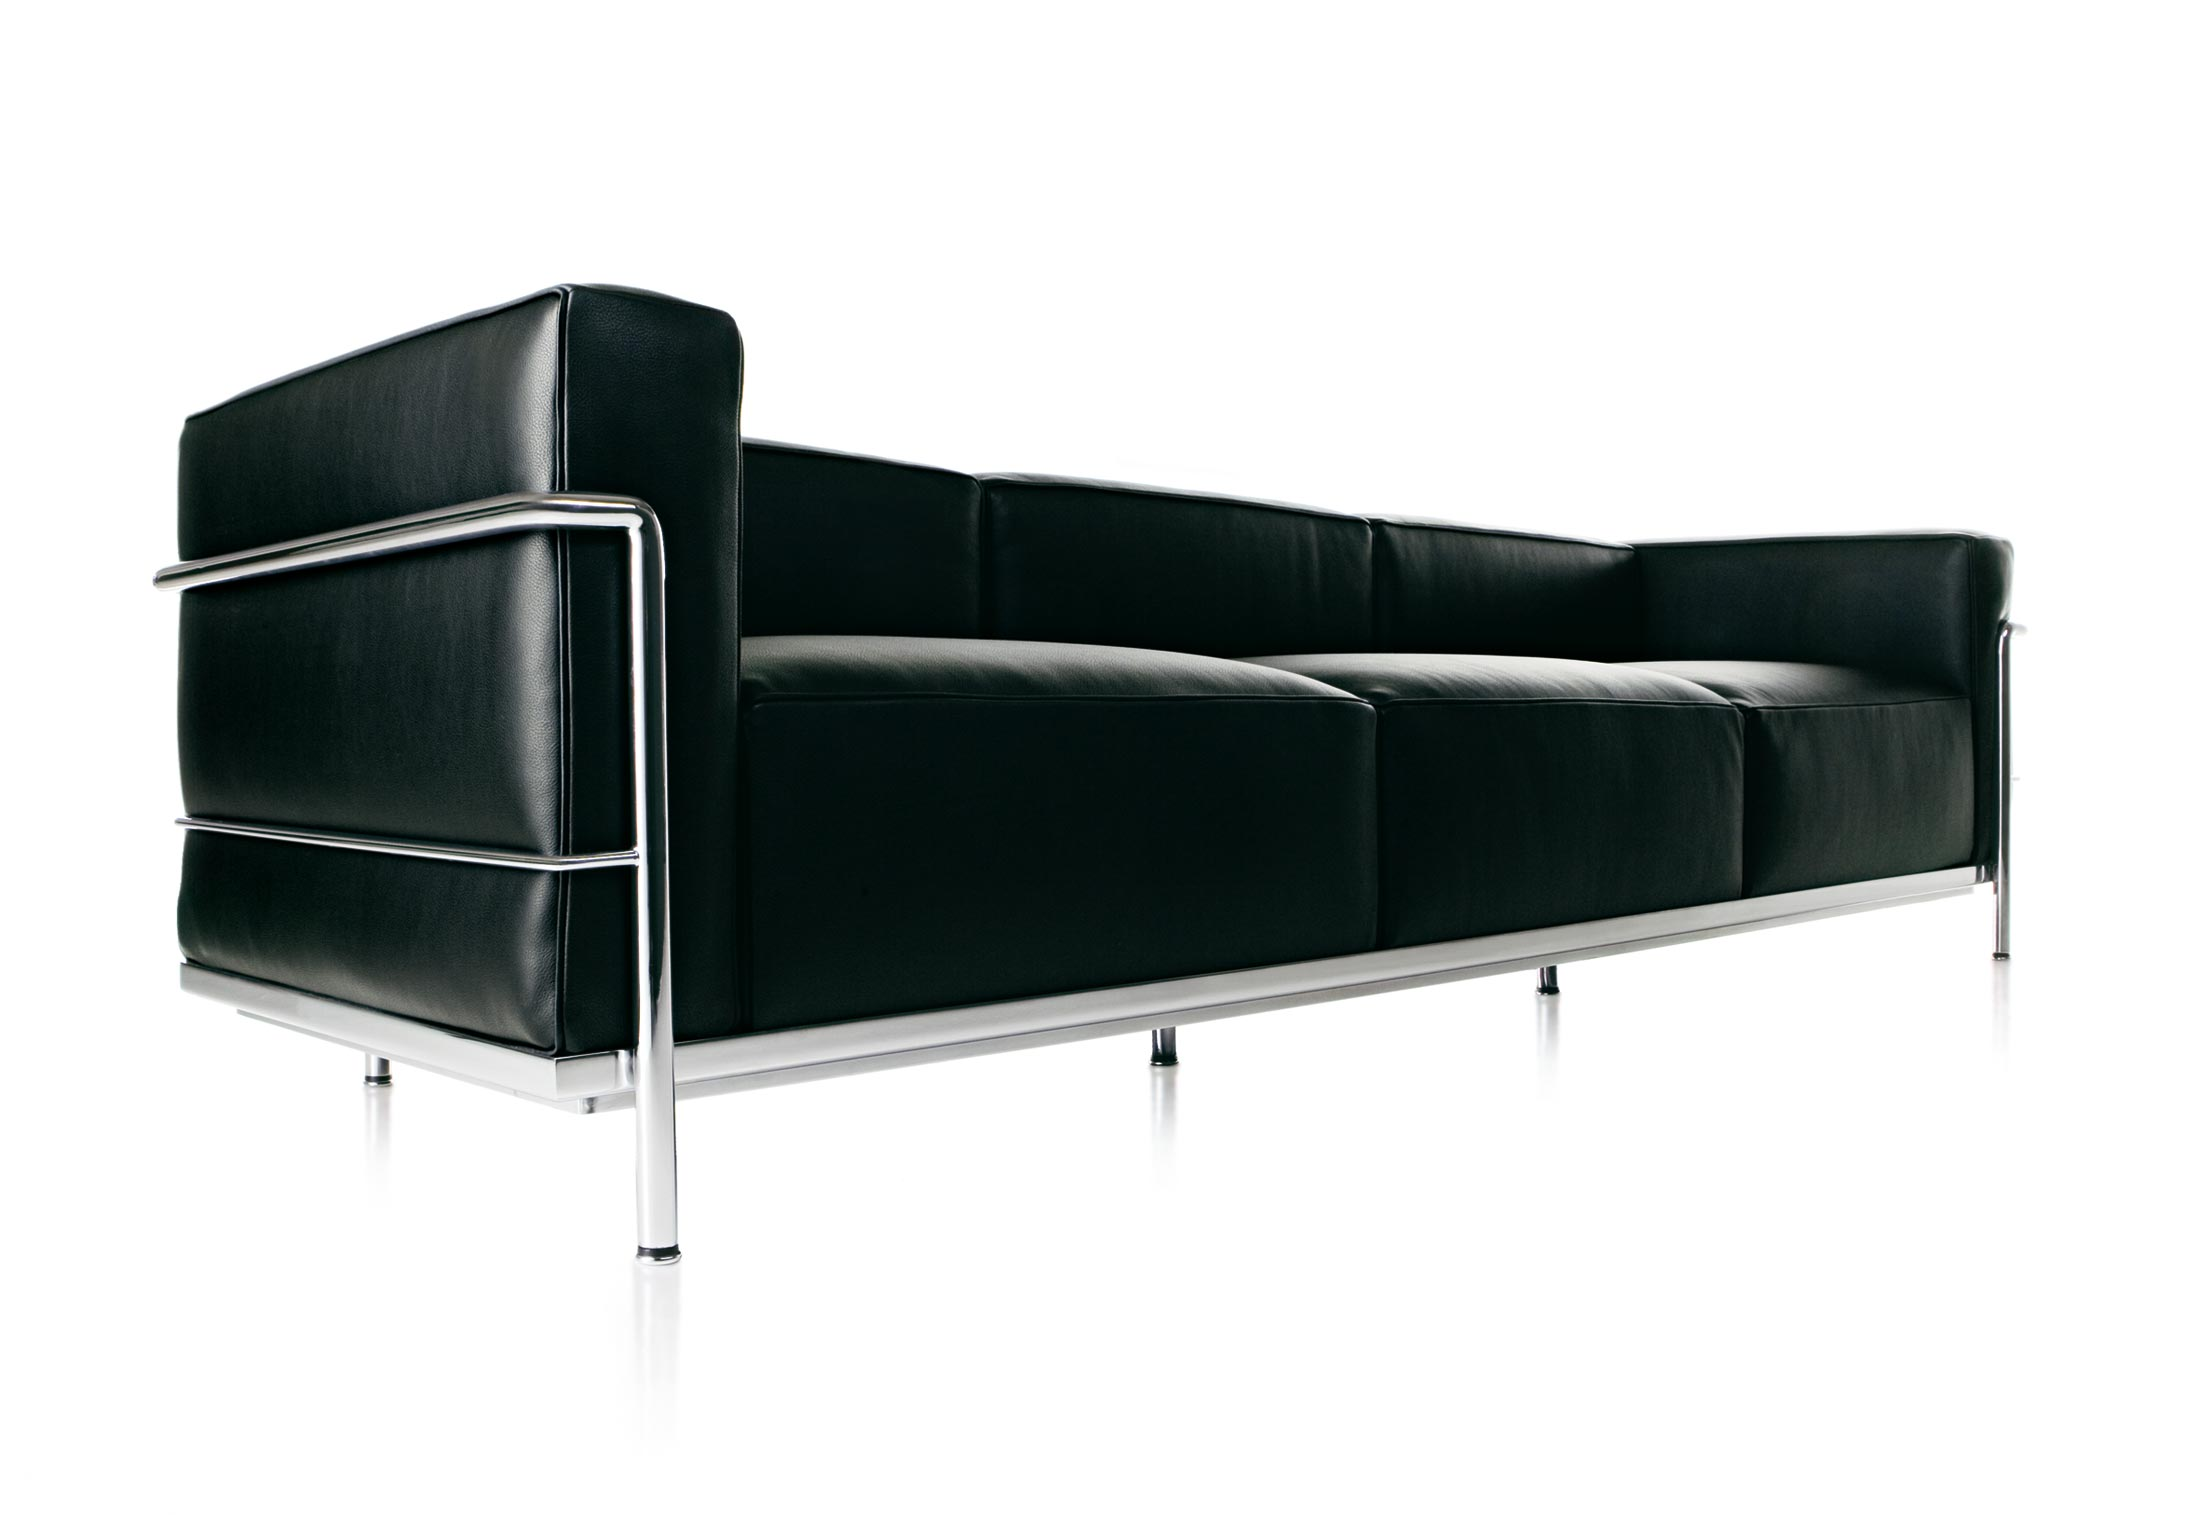 LC21 21 seater sofa by Cassina   STYLEPARK